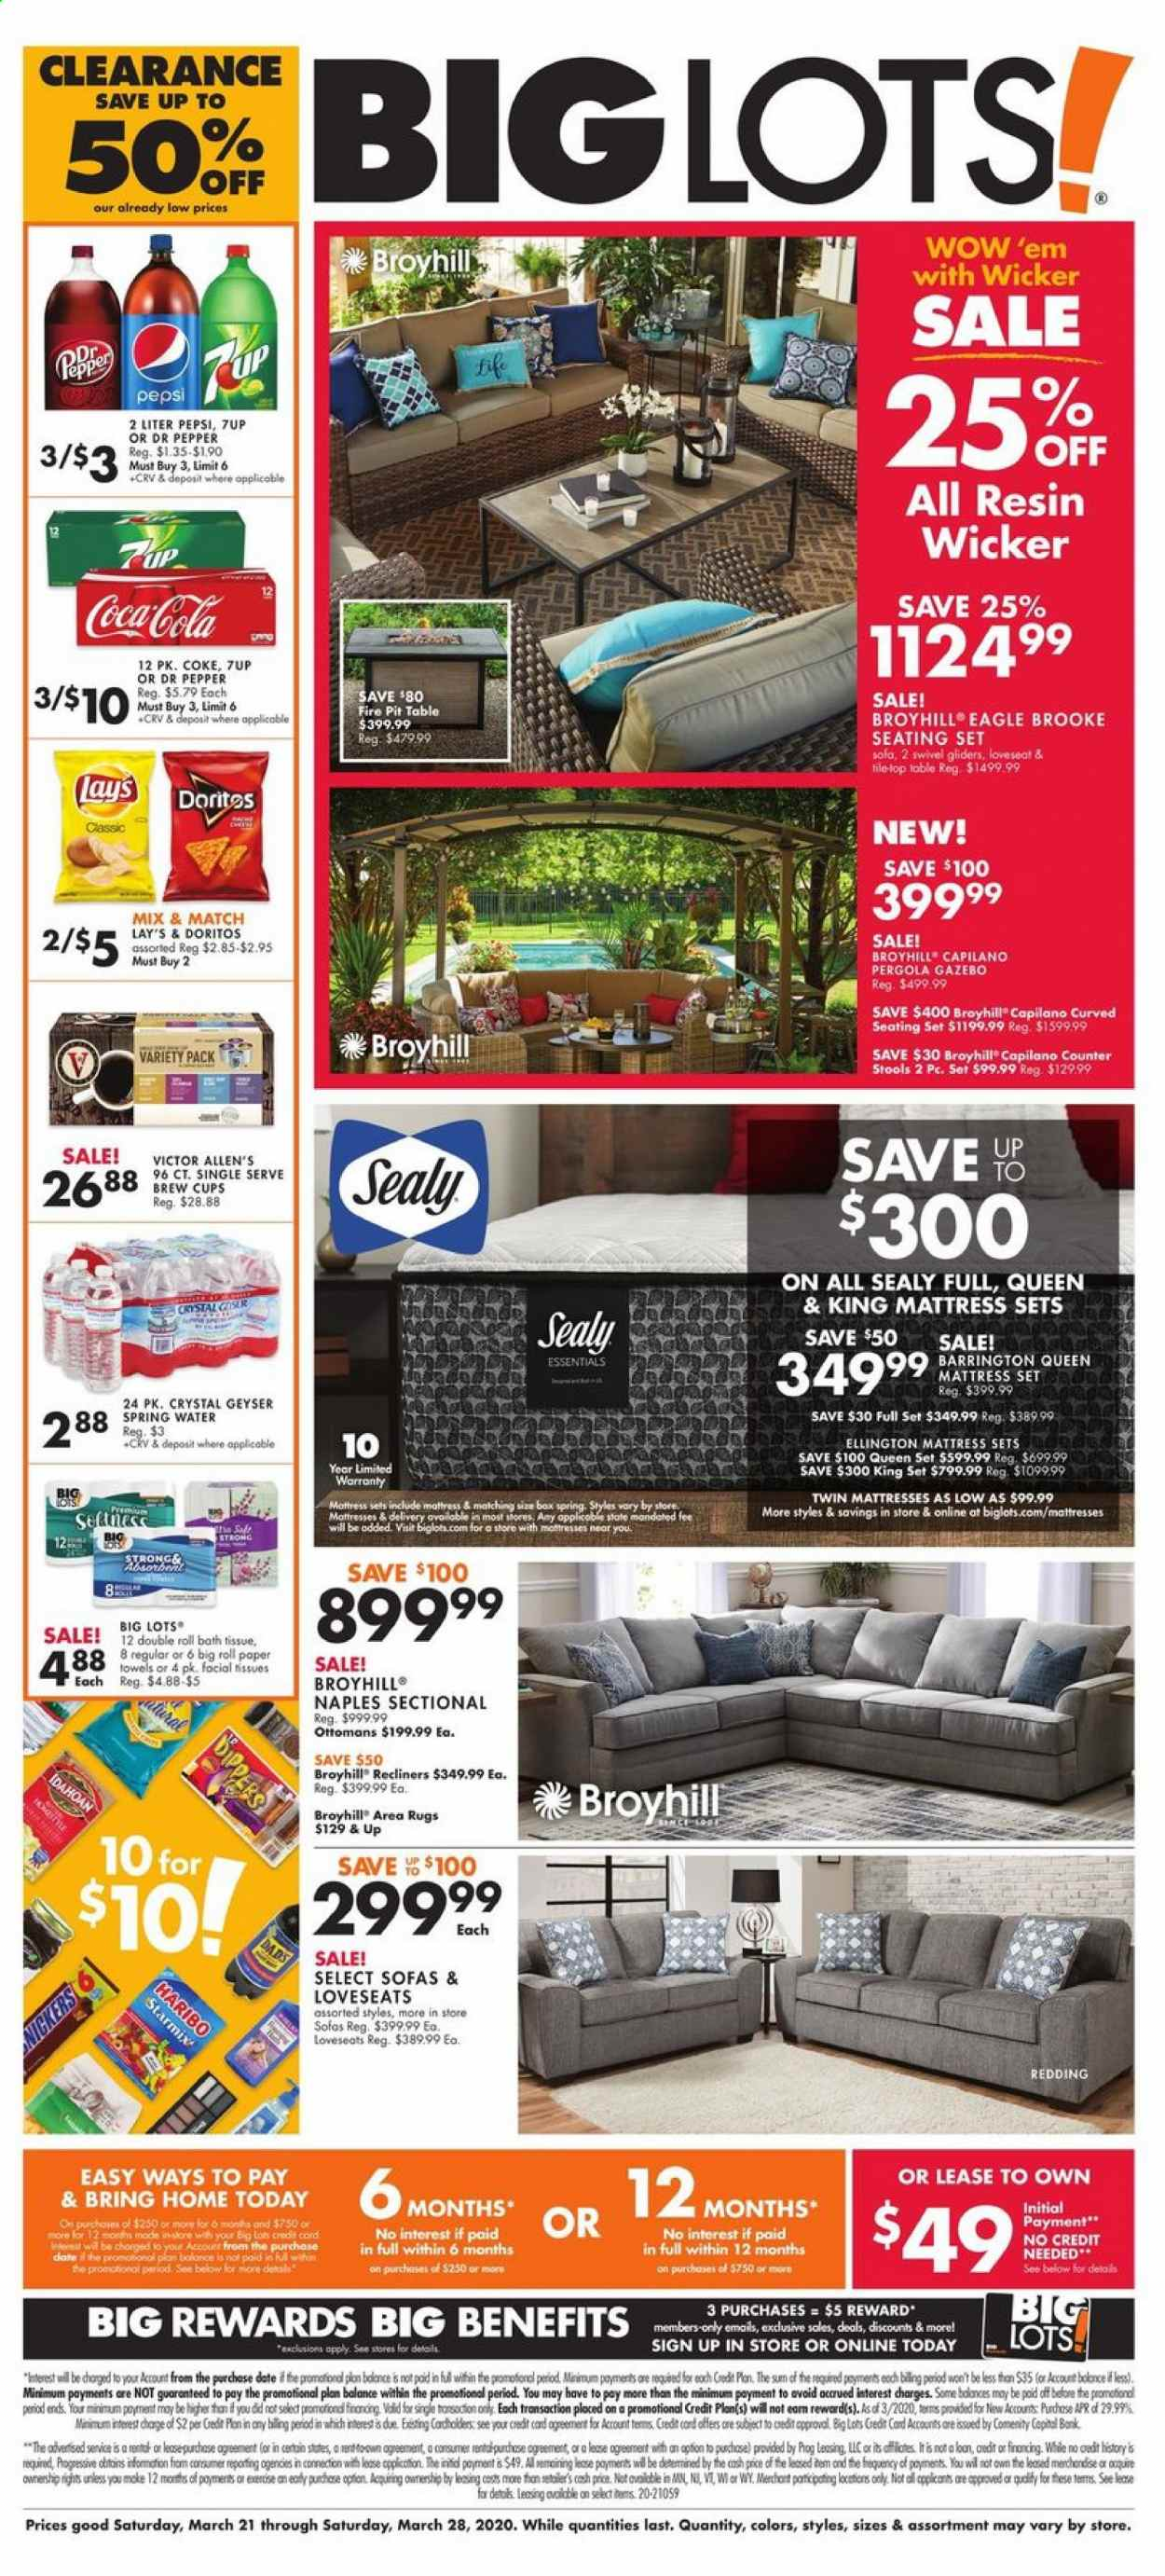 Big Lots Flyer - 03.21.2020 - 03.28.2020 - Sales products - table, loveseat, sofa, seating set, mattress, pergola, Haribo, Doritos, Lay's, Coca-Cola, Pepsi, Dr. Pepper, 7UP, spring water, L'Or, bath tissue, kitchen towels, paper towels, facial tissues, pan, cup, essentials, water. Page 1.